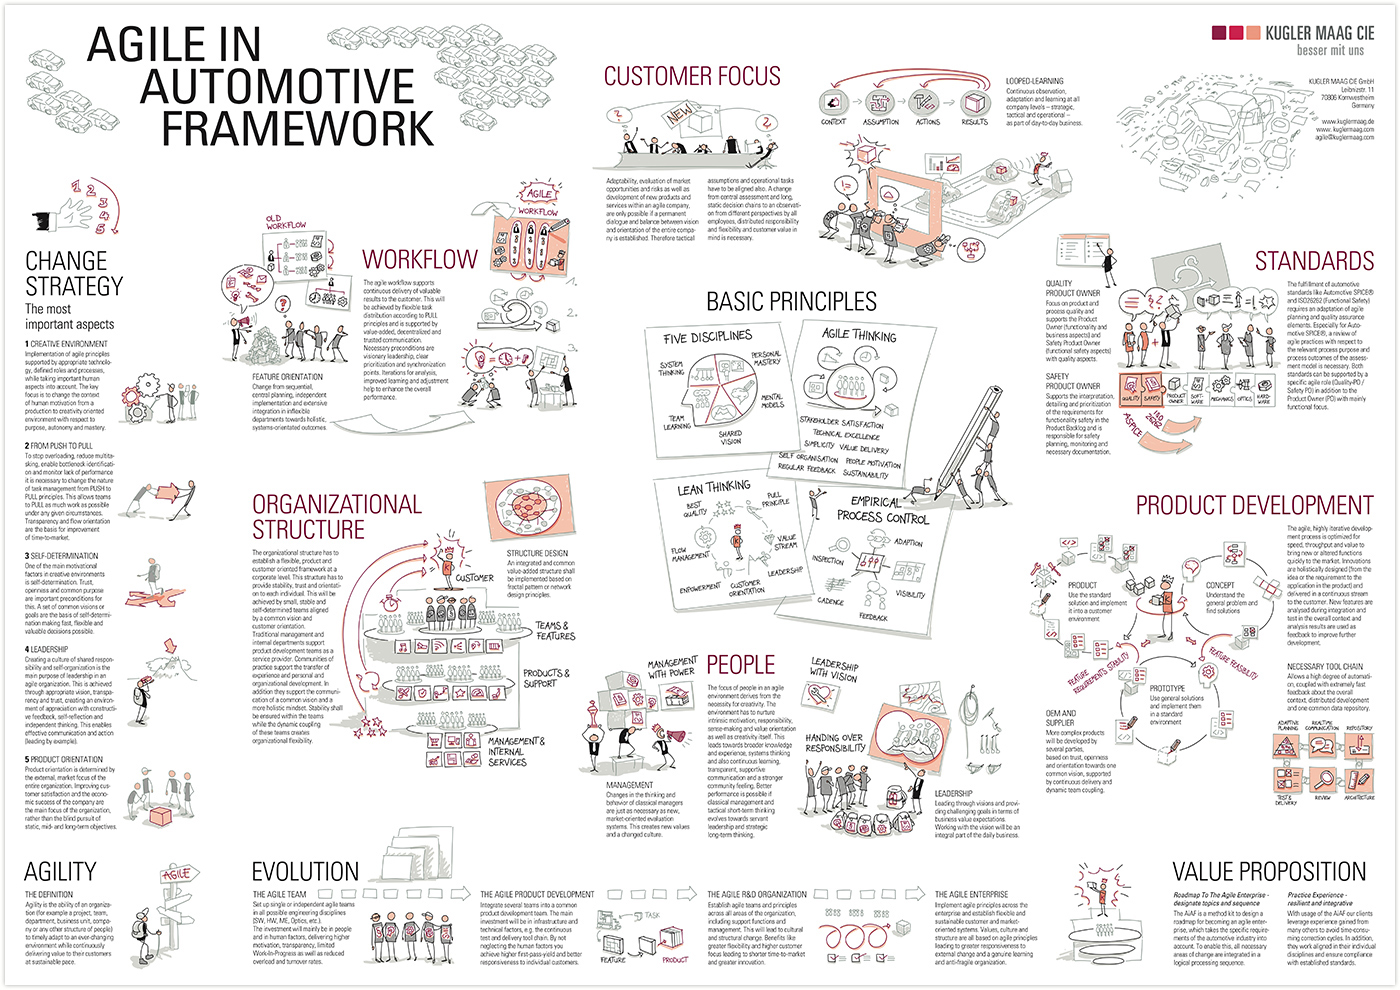 Agile In Automotive Framework